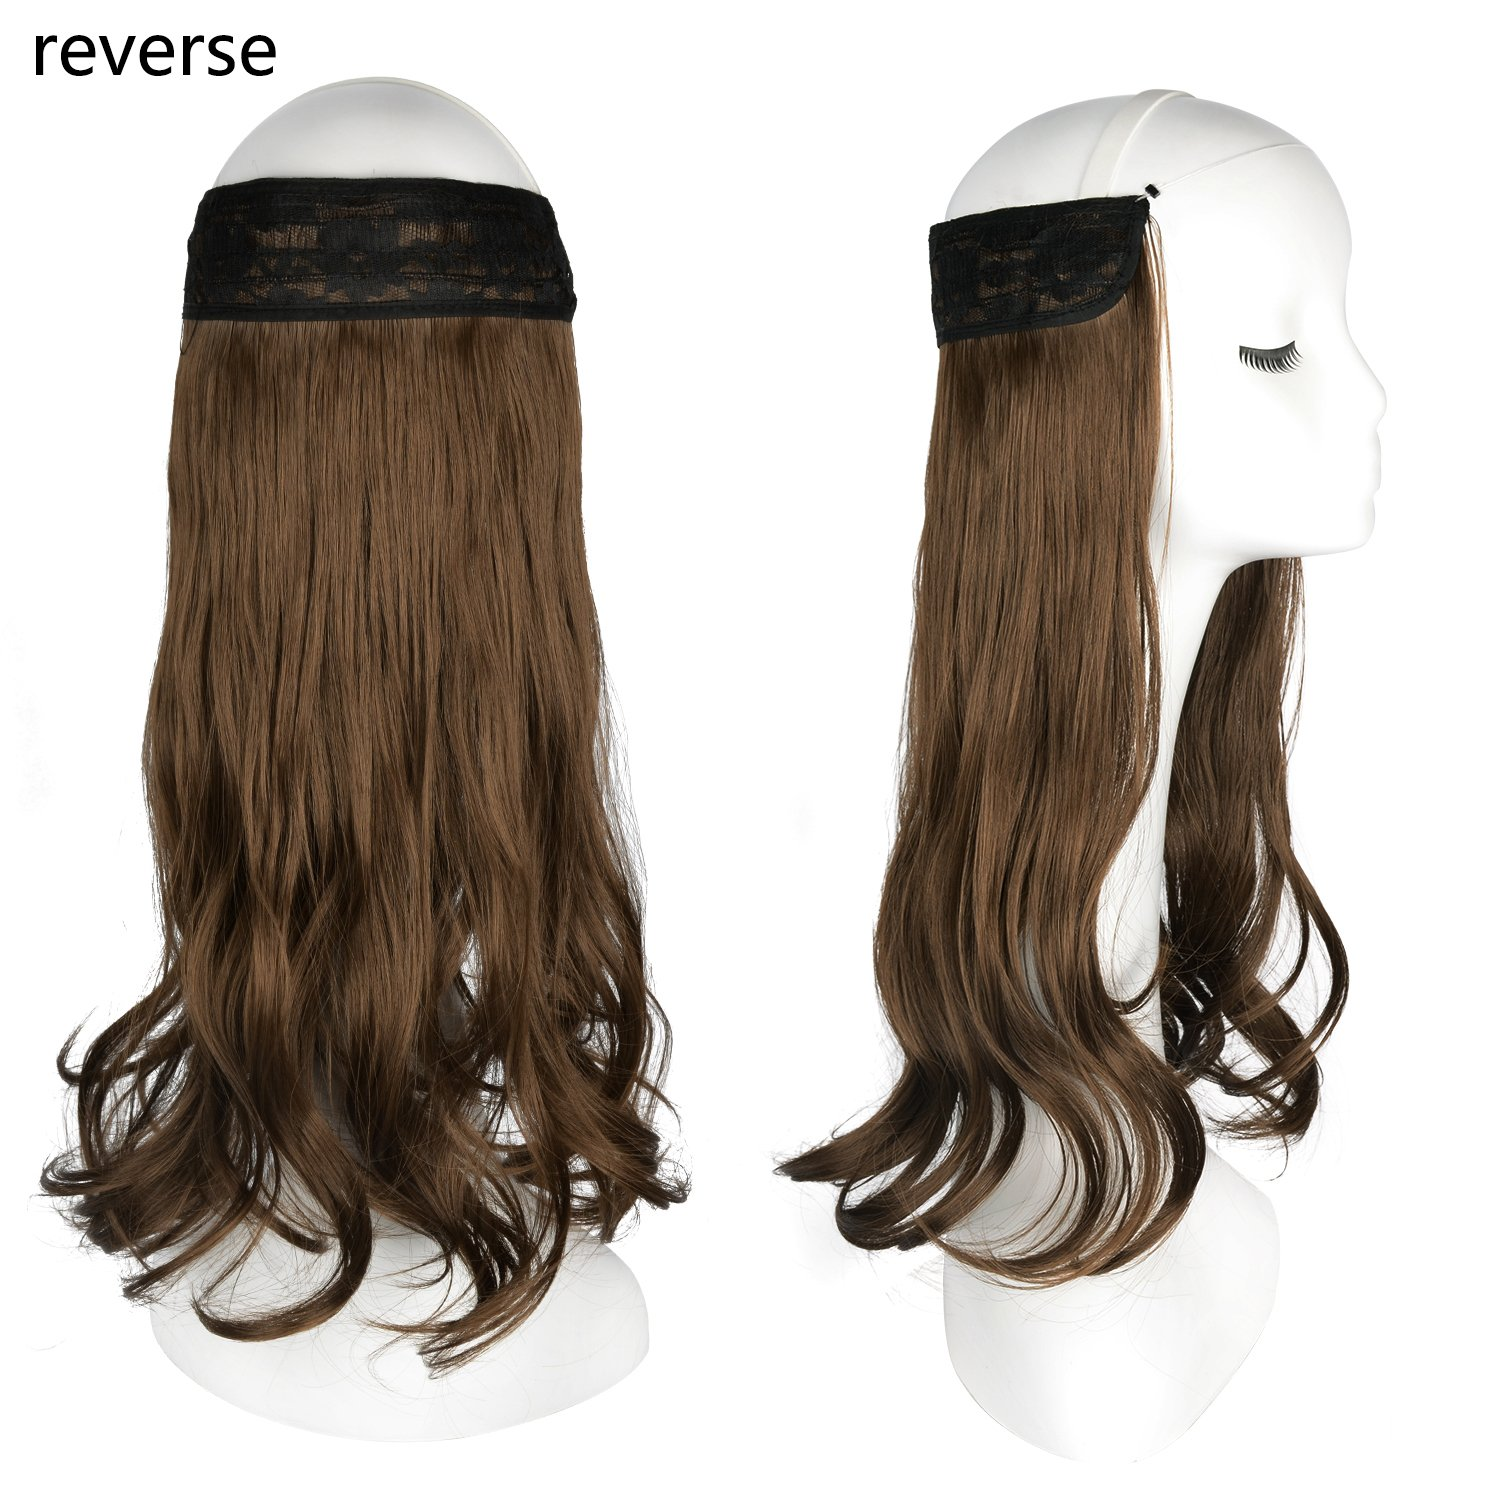 FESHFEN 20 inch Invisible Wire Secret Halo Hair Extensions Curly ...